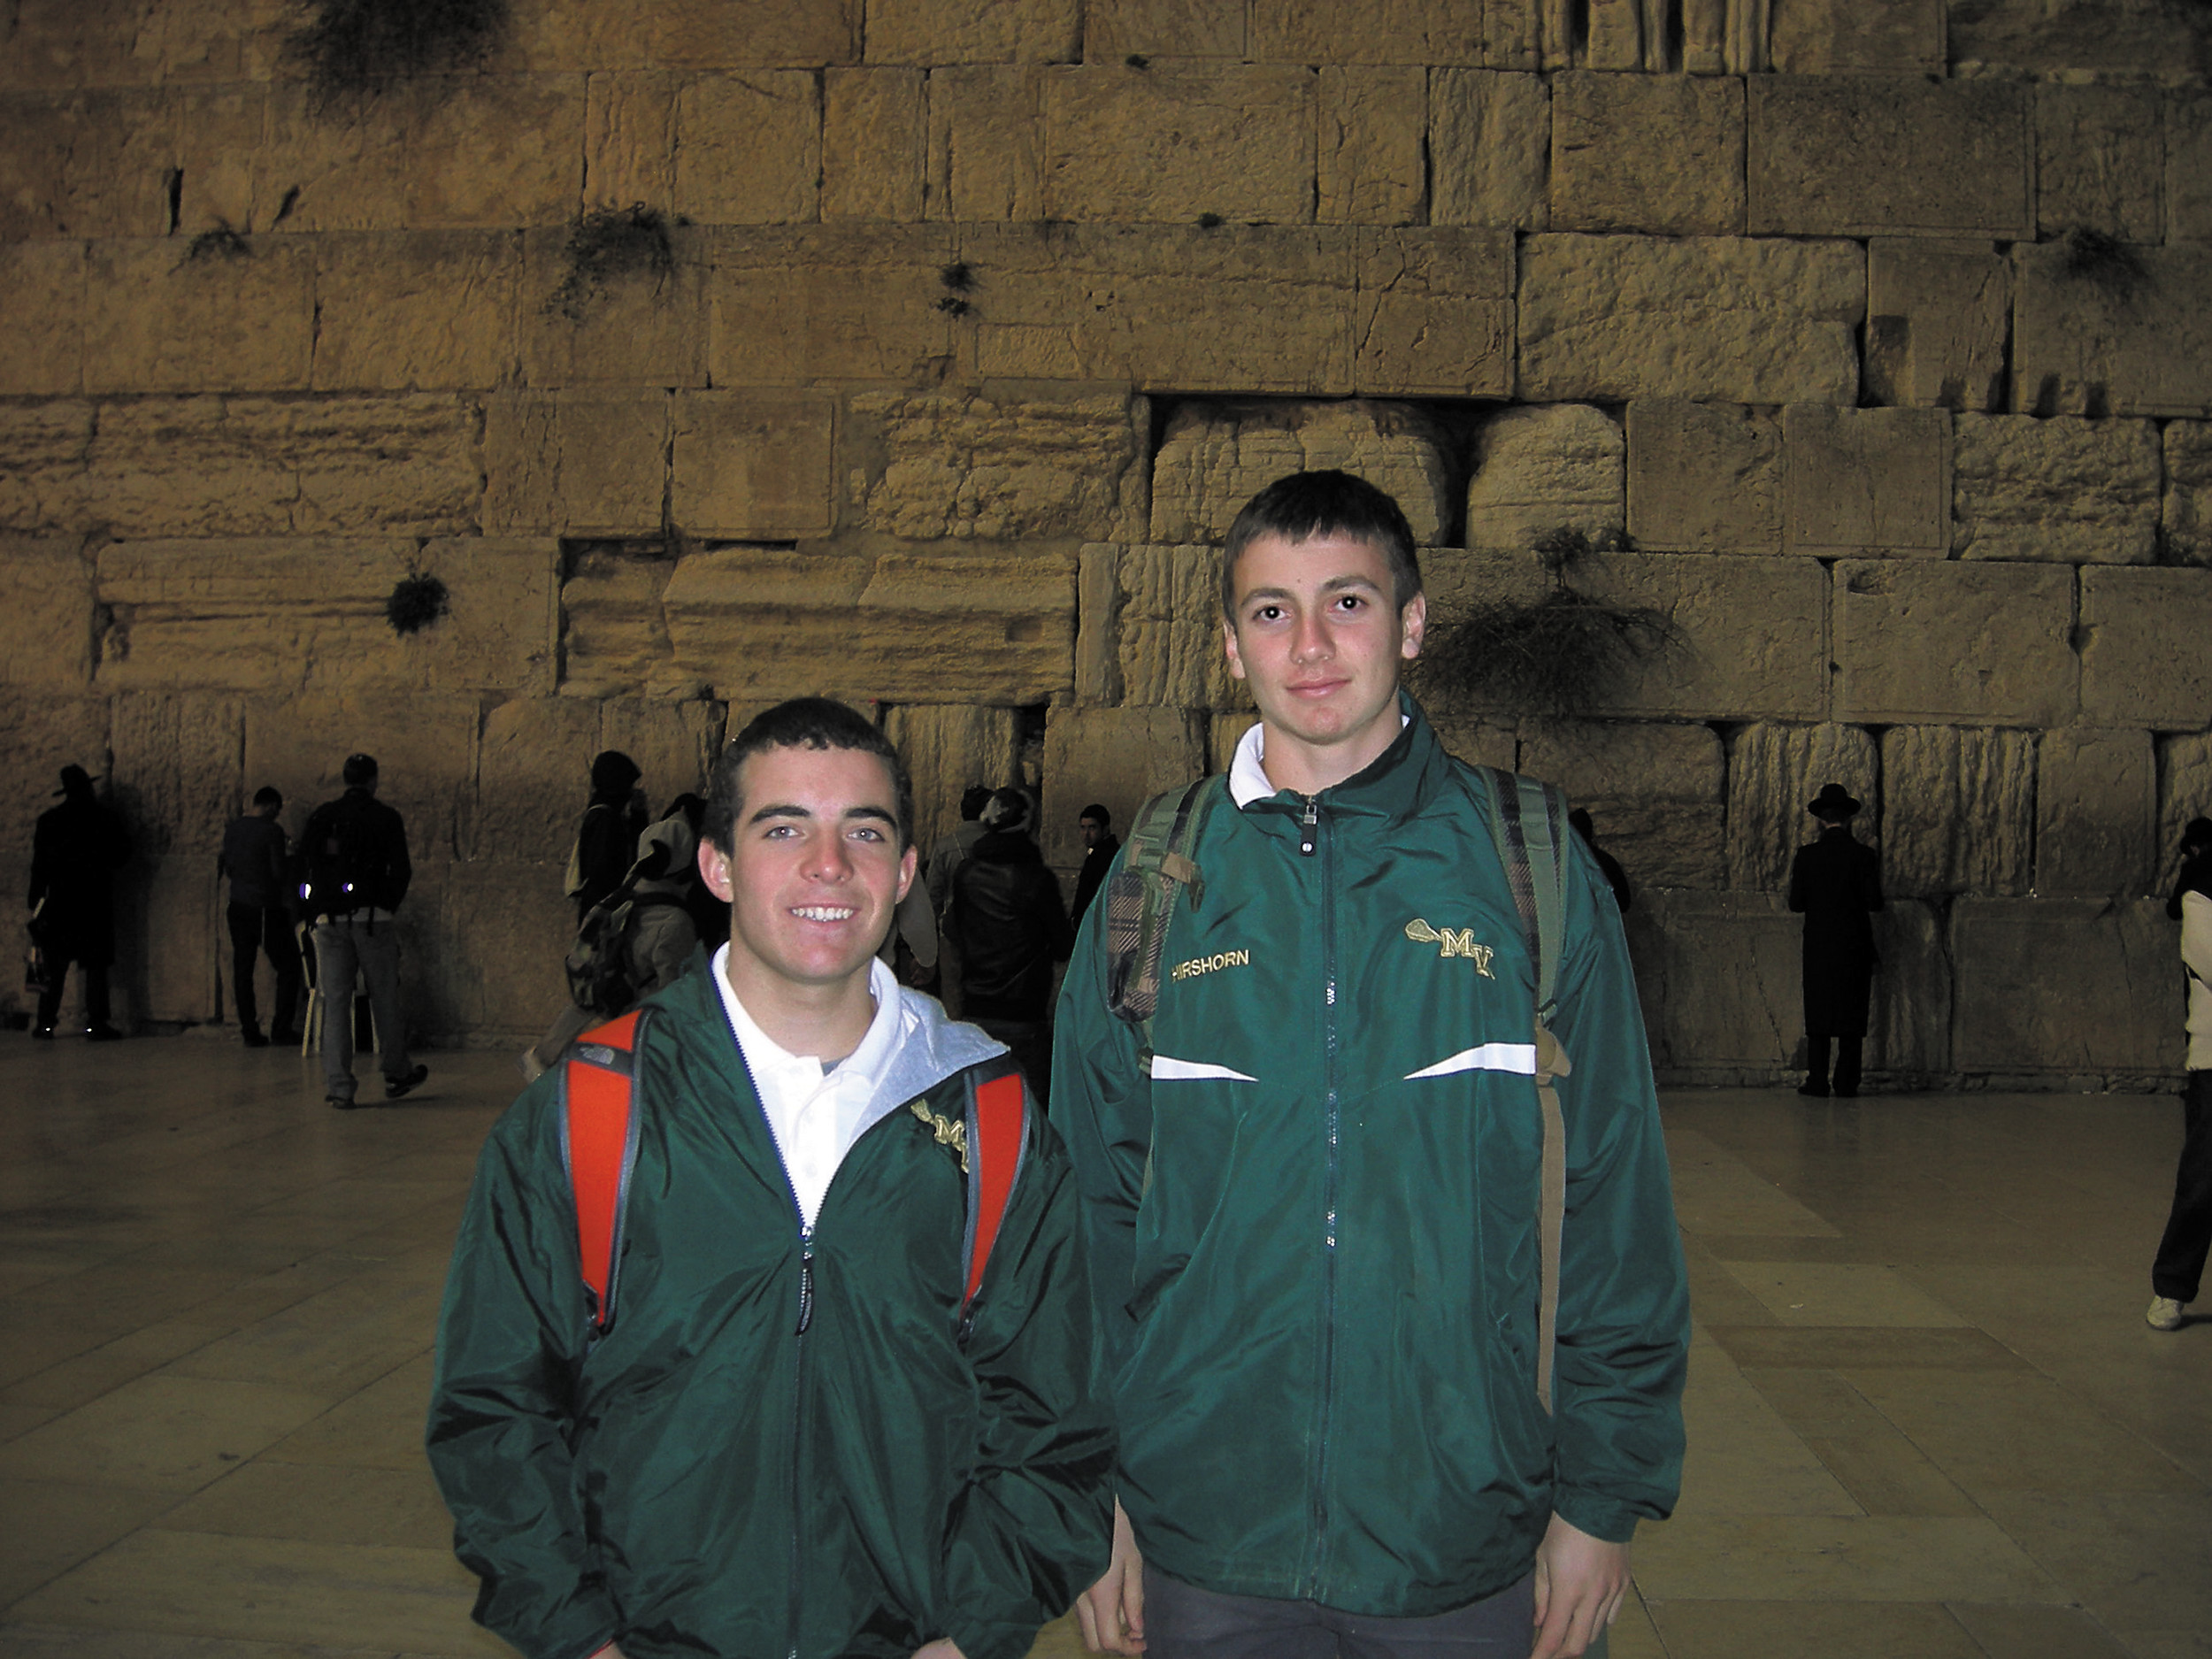 Andrew Medina, left, and Noah Hirshorn spend time together at the Western Wall in the Old City of Jerusalem.